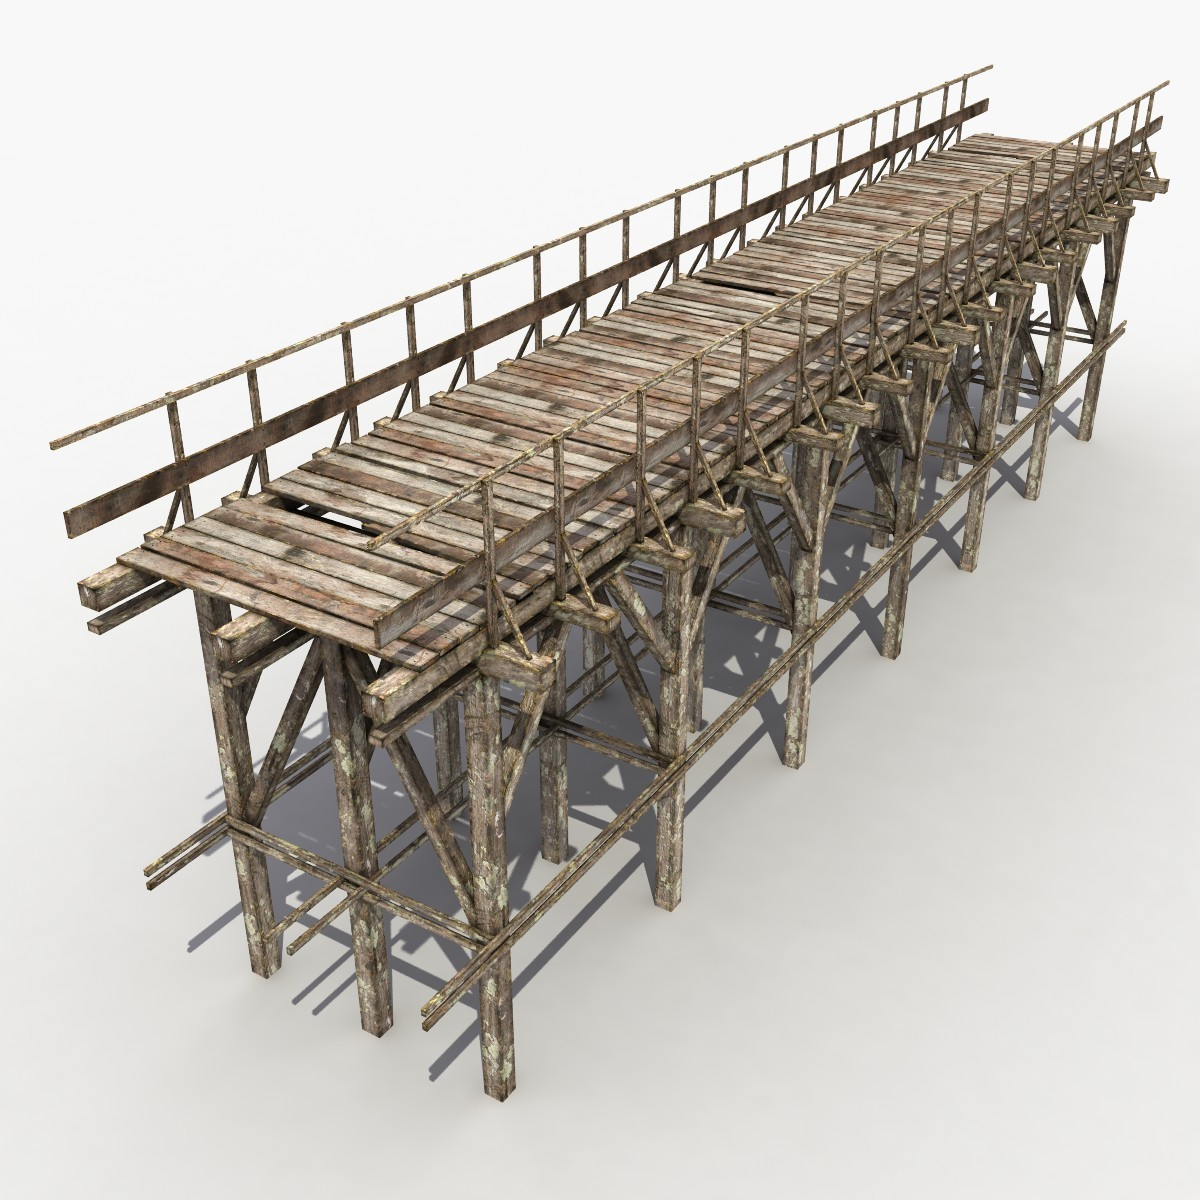 wooden_bridge_6_c_0000.jpg